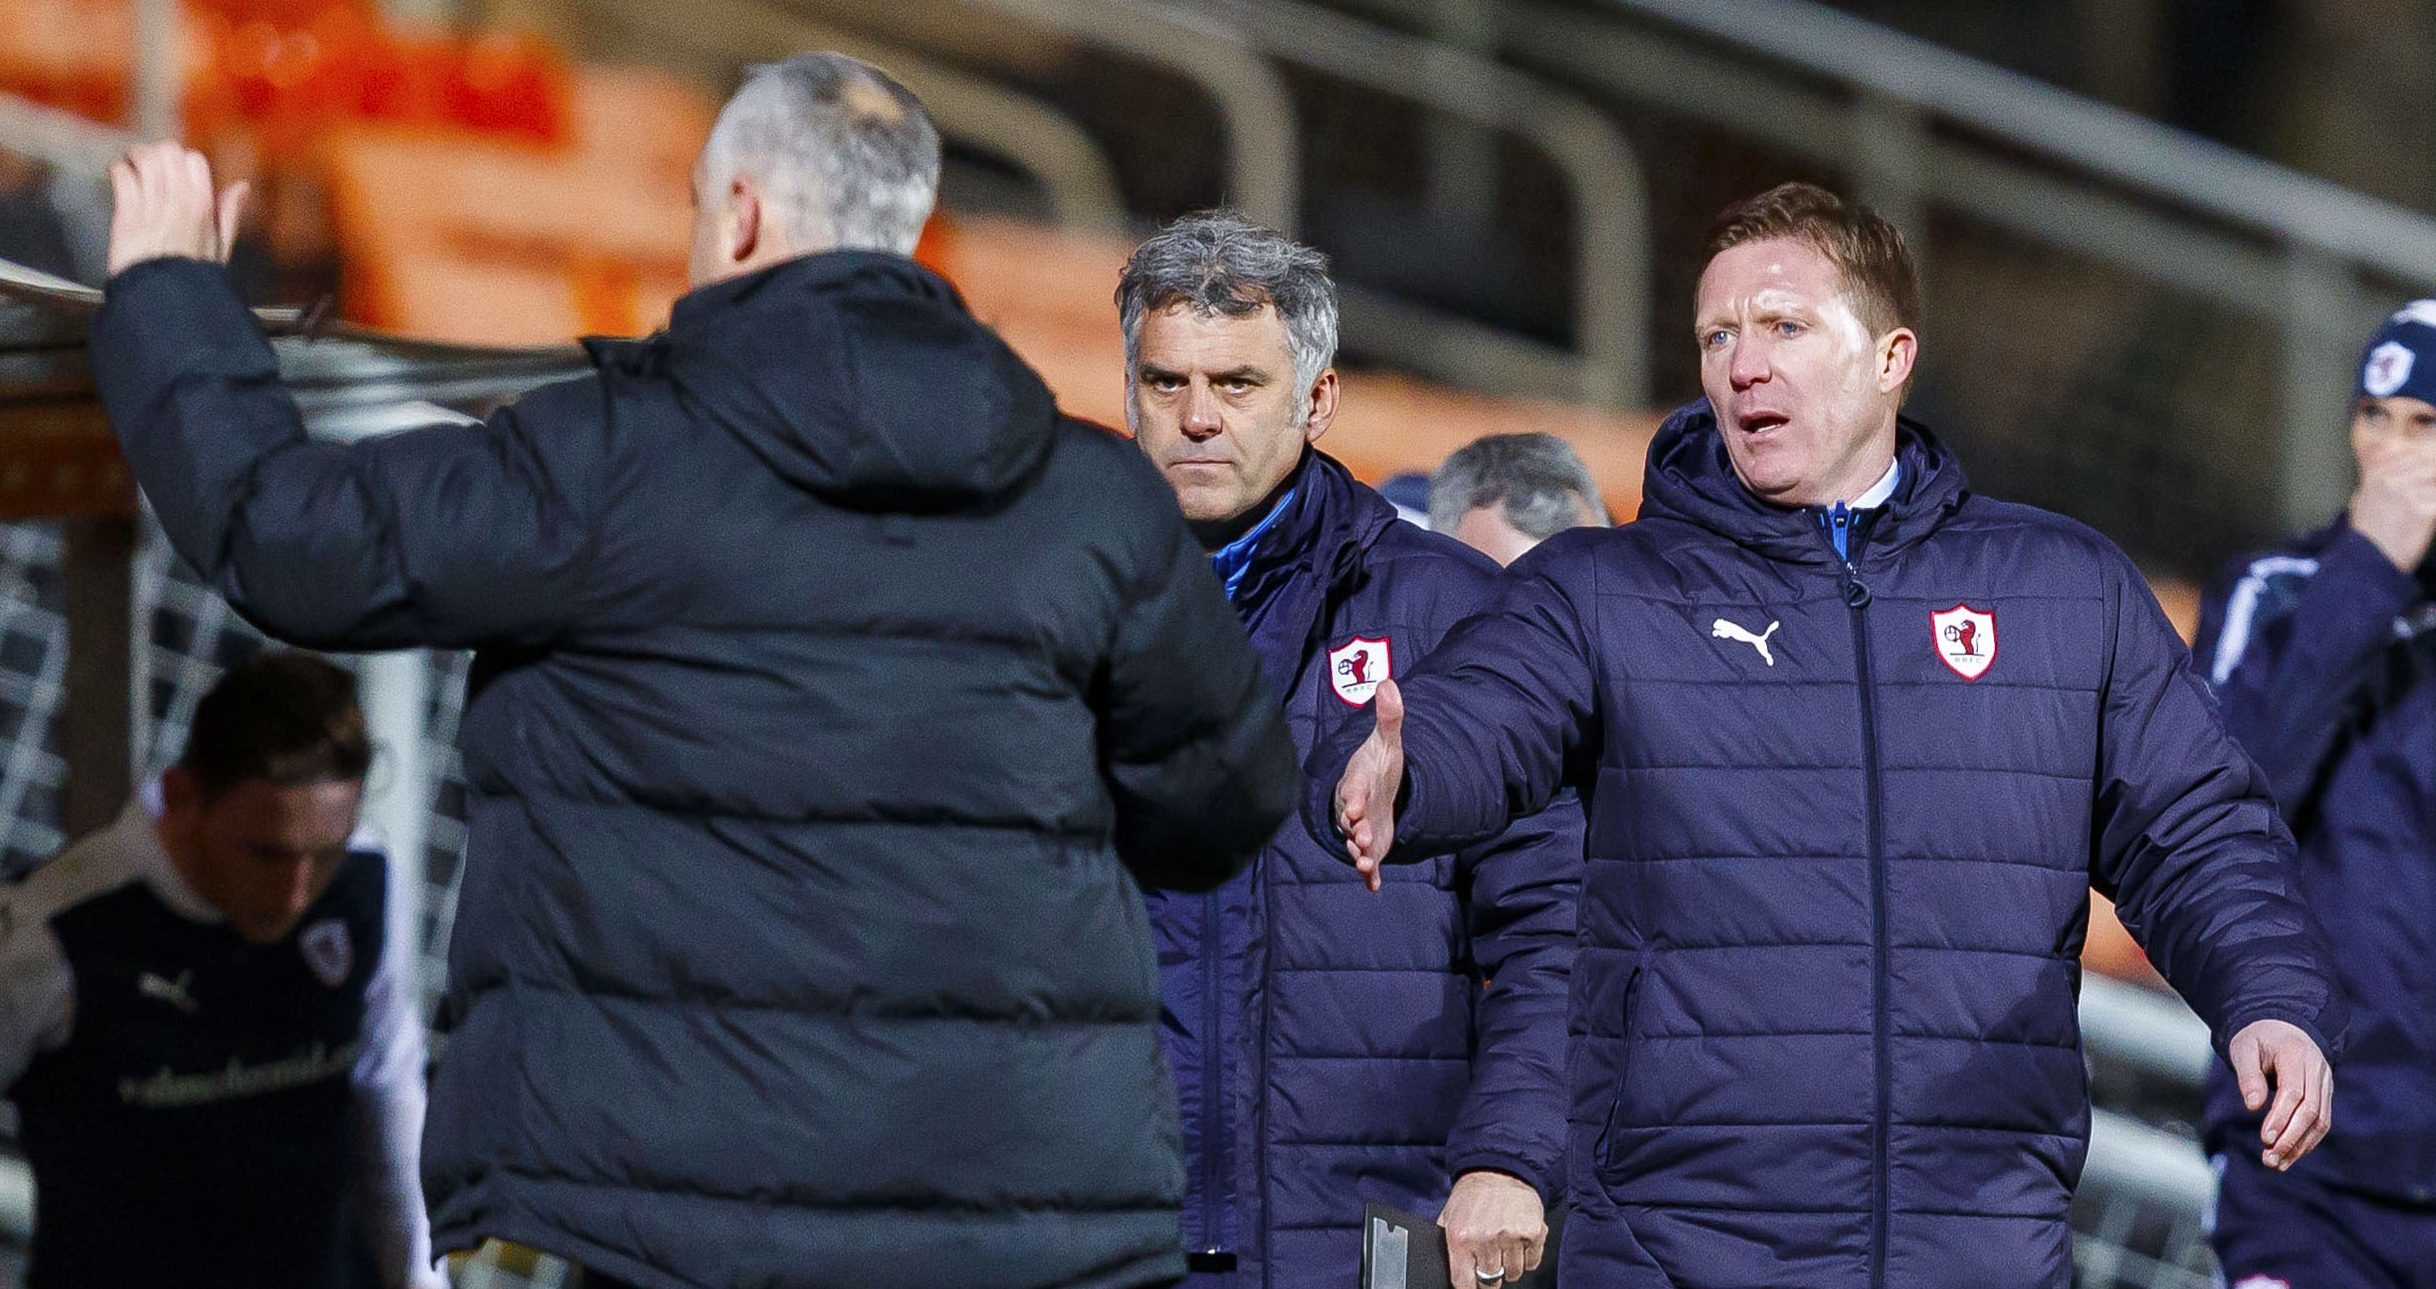 Gary Locke goes to shake hands with opposite number Ray McKinnon at the final whistle.